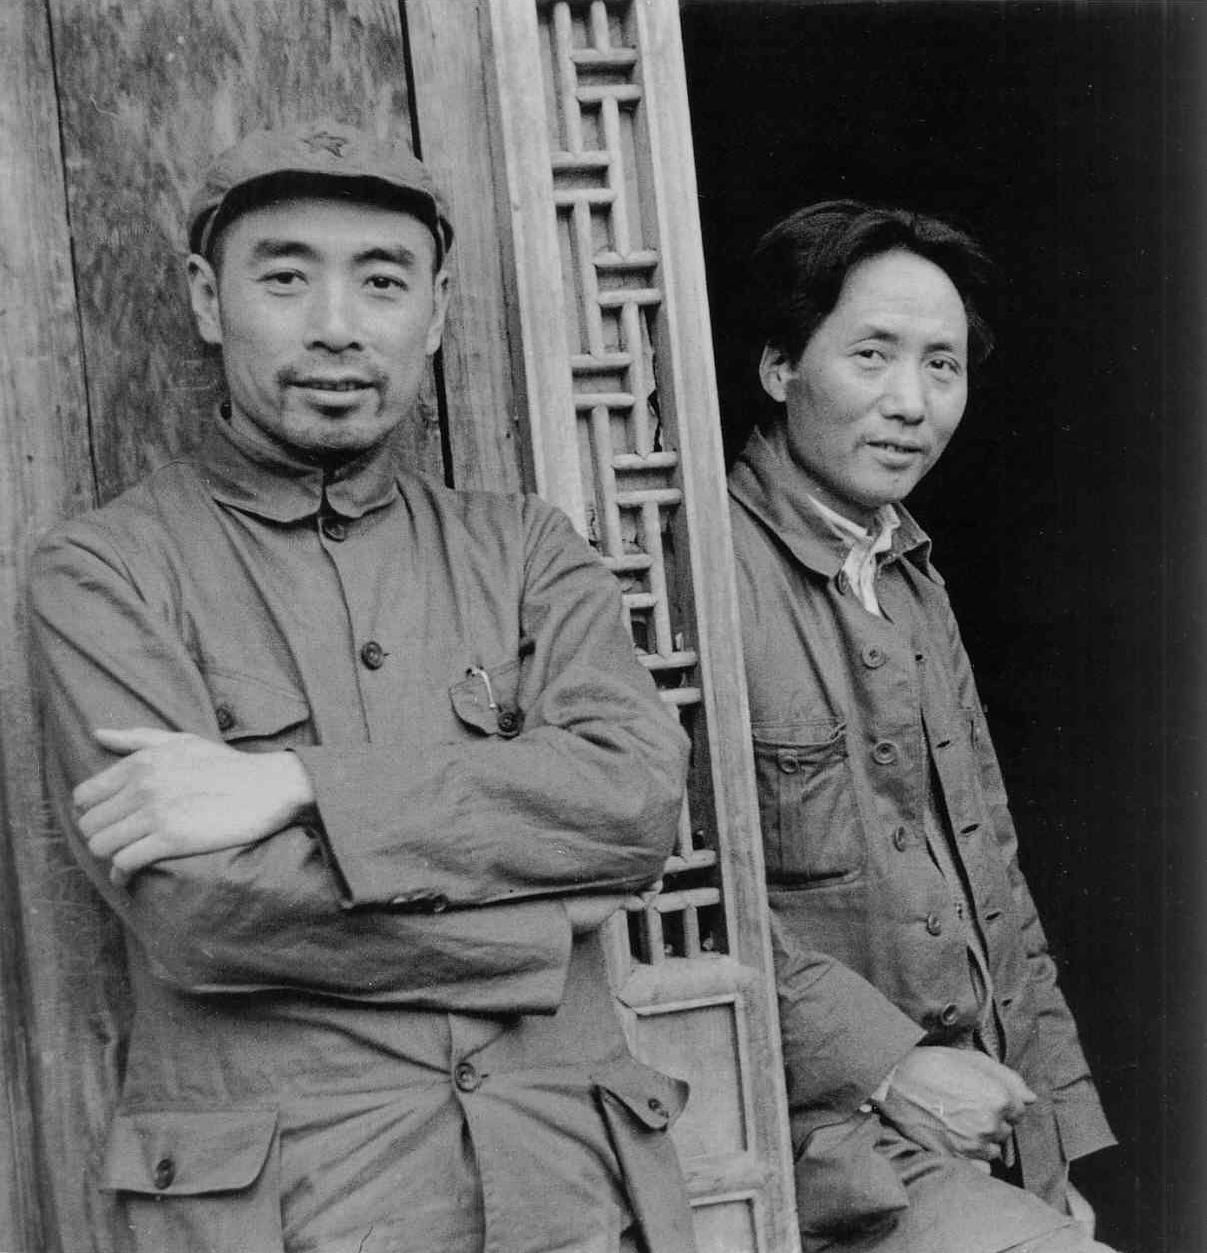 Chinese Communist leaders Zhou Enlai and Mao Zedong in 1935.